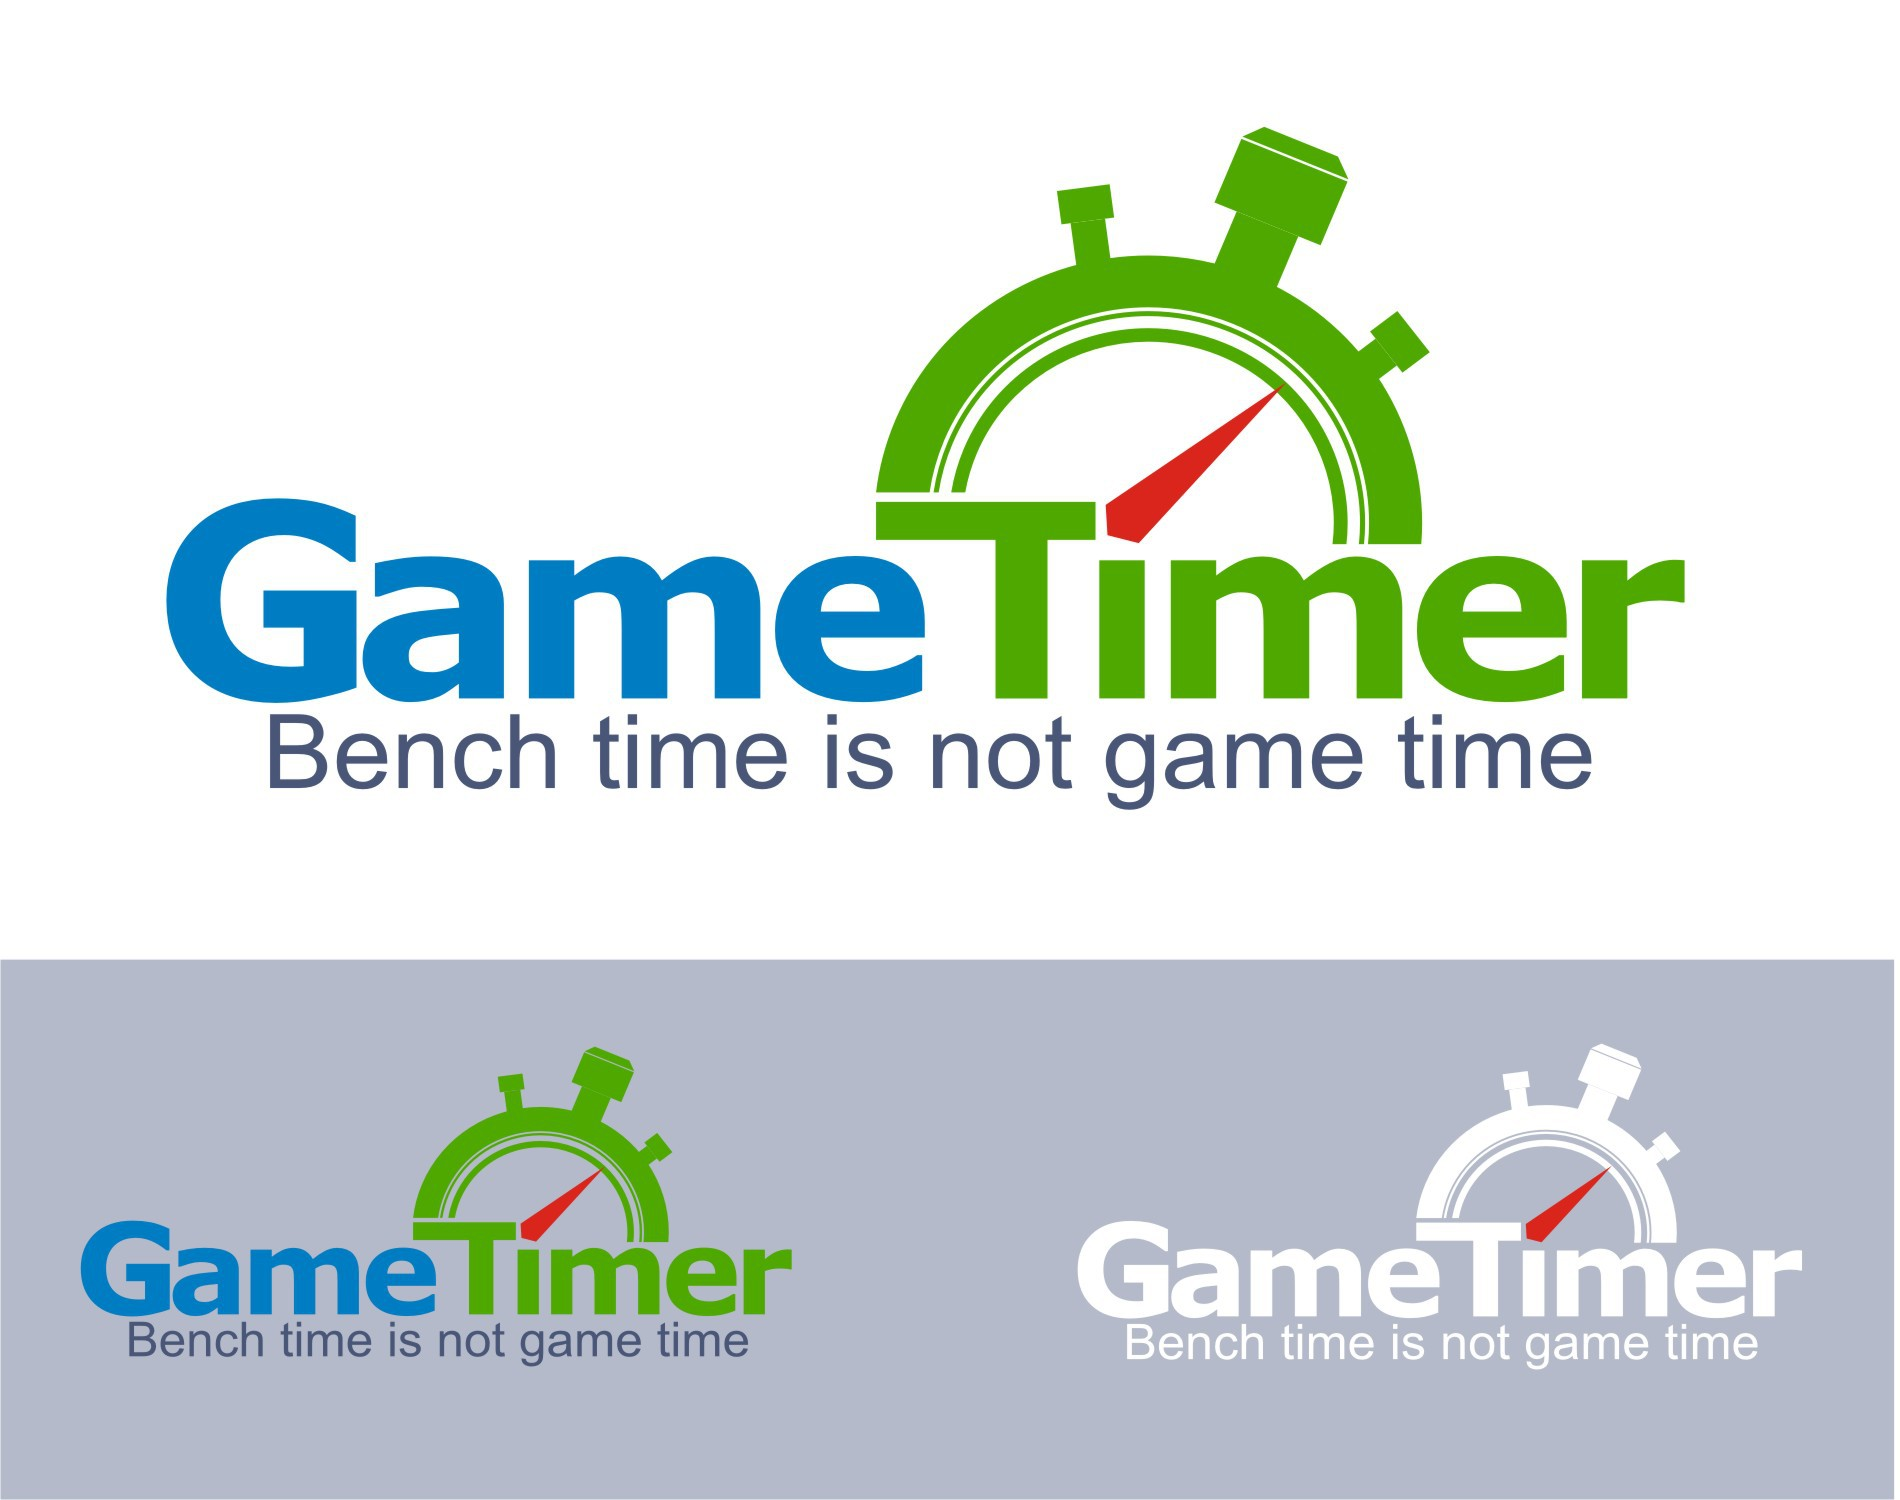 Help Gametimer with a new logo